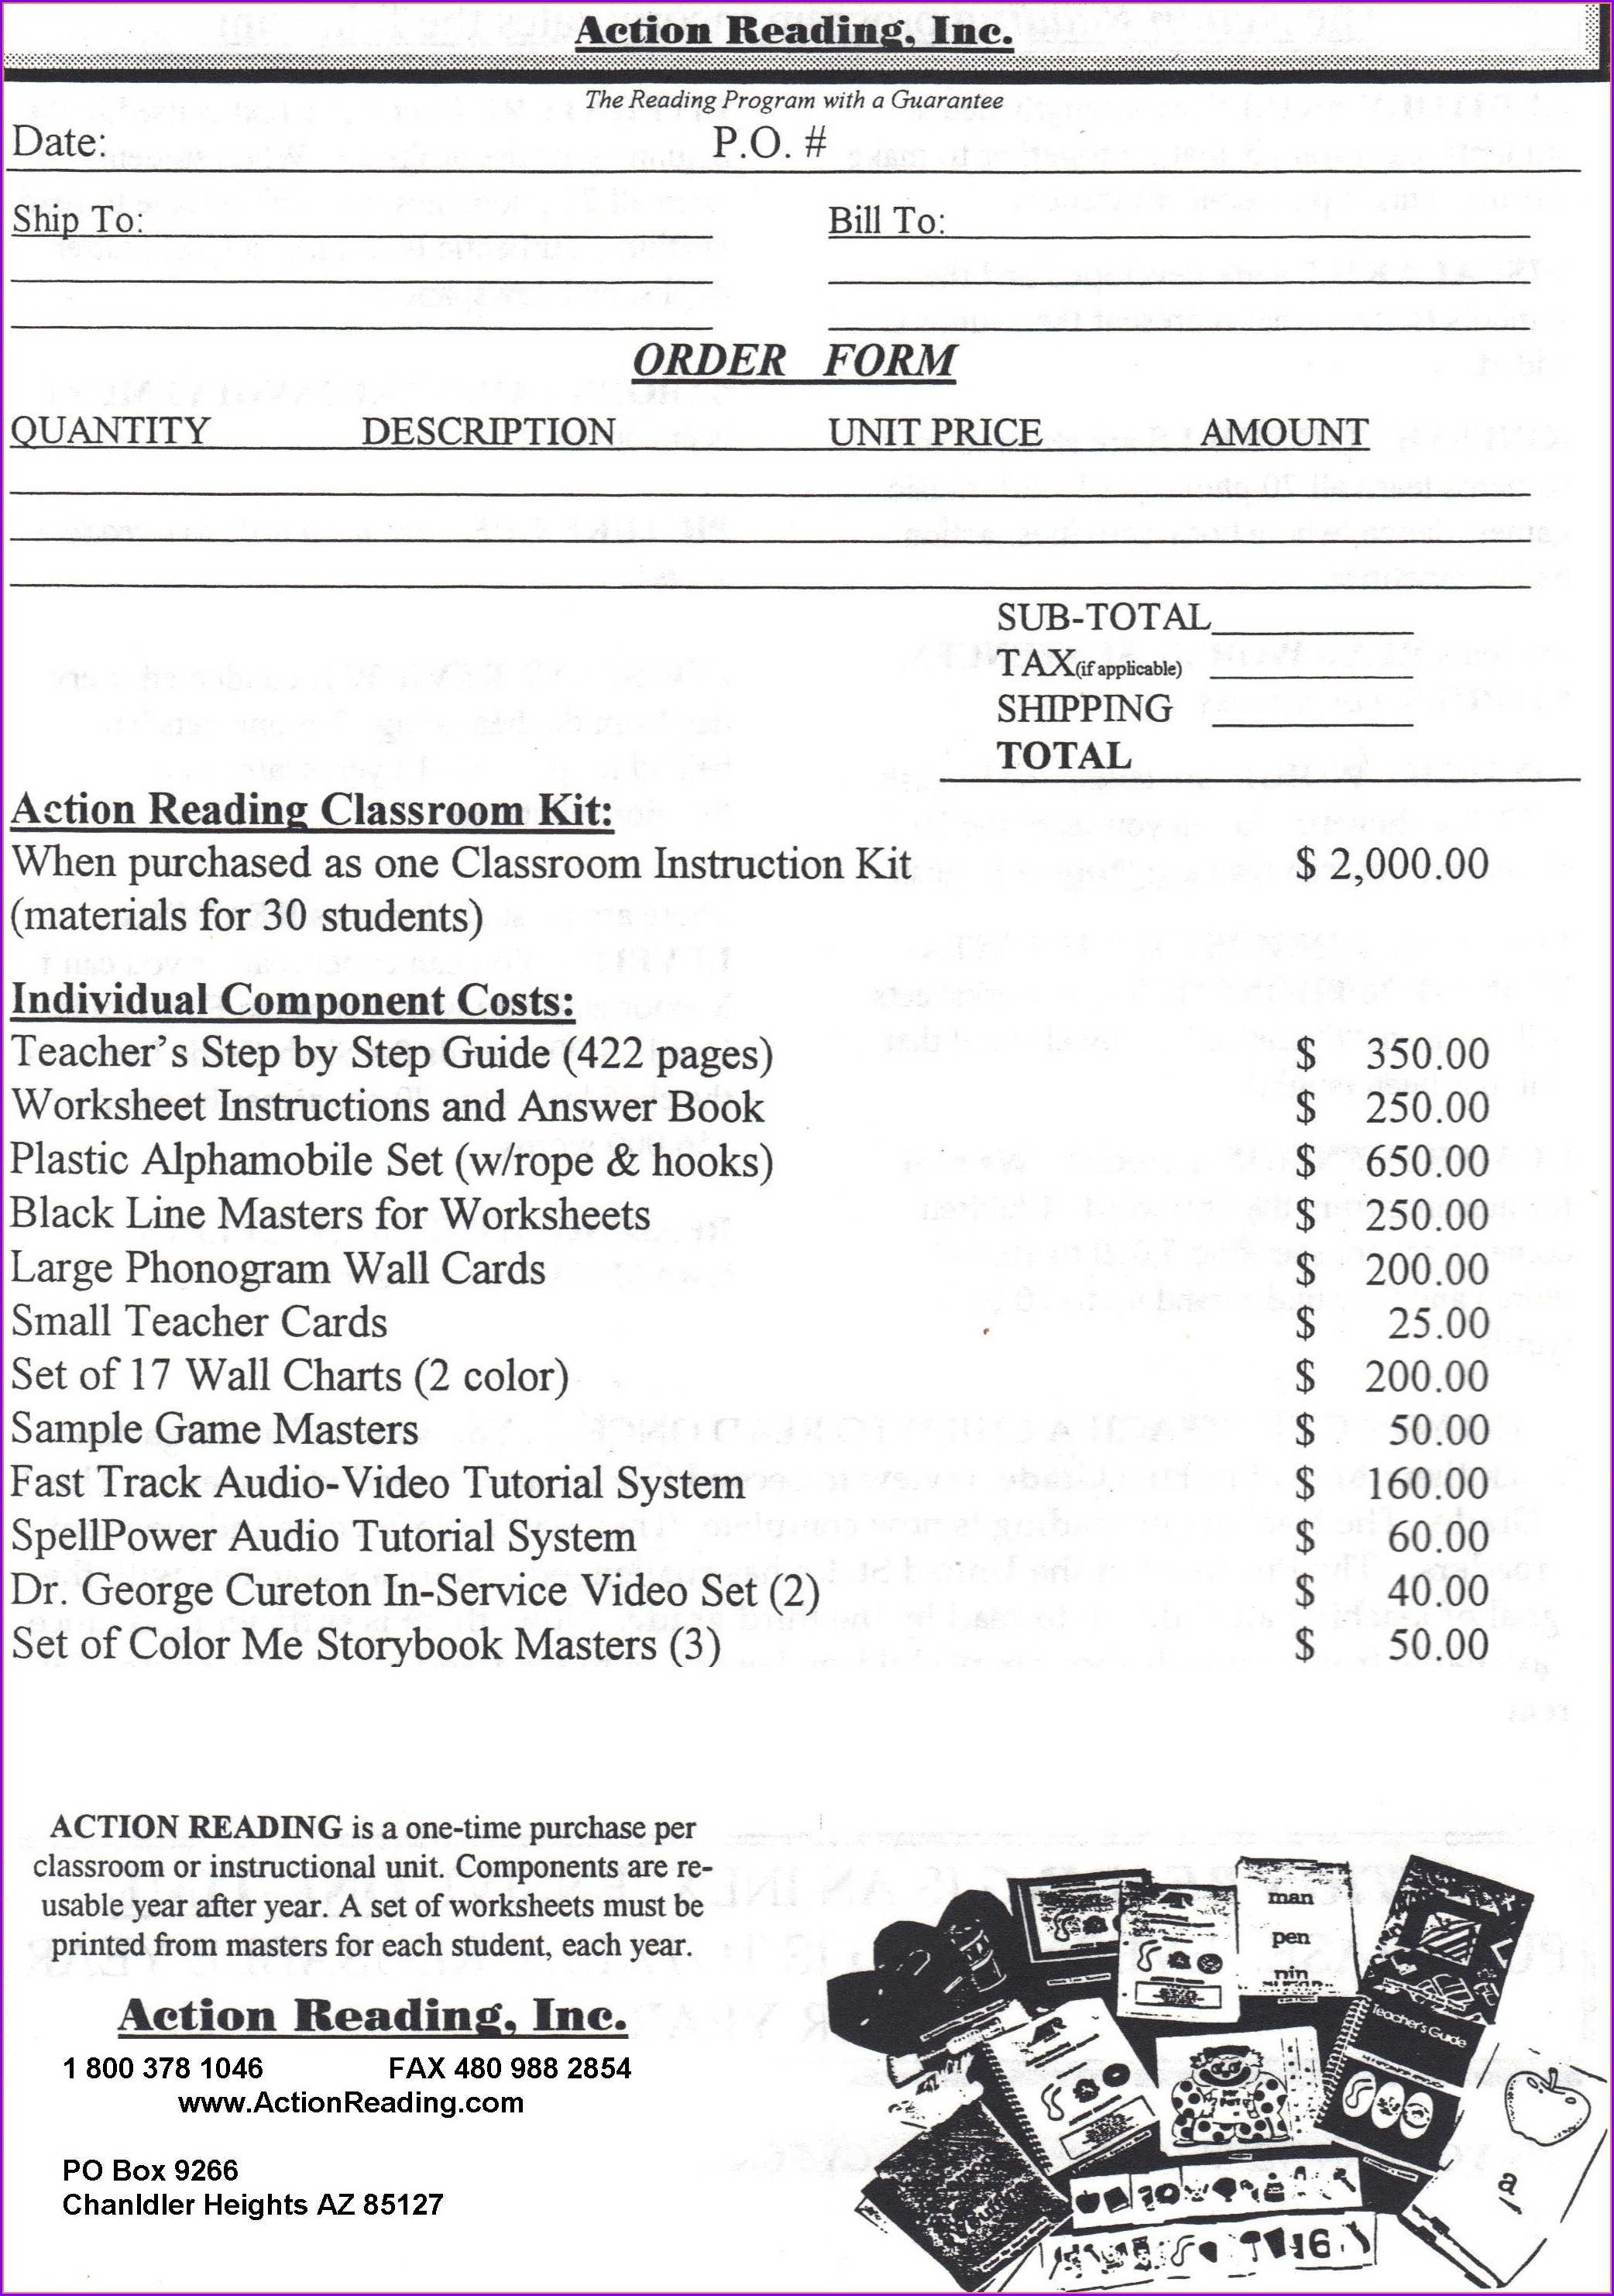 Child Support Worksheet Az